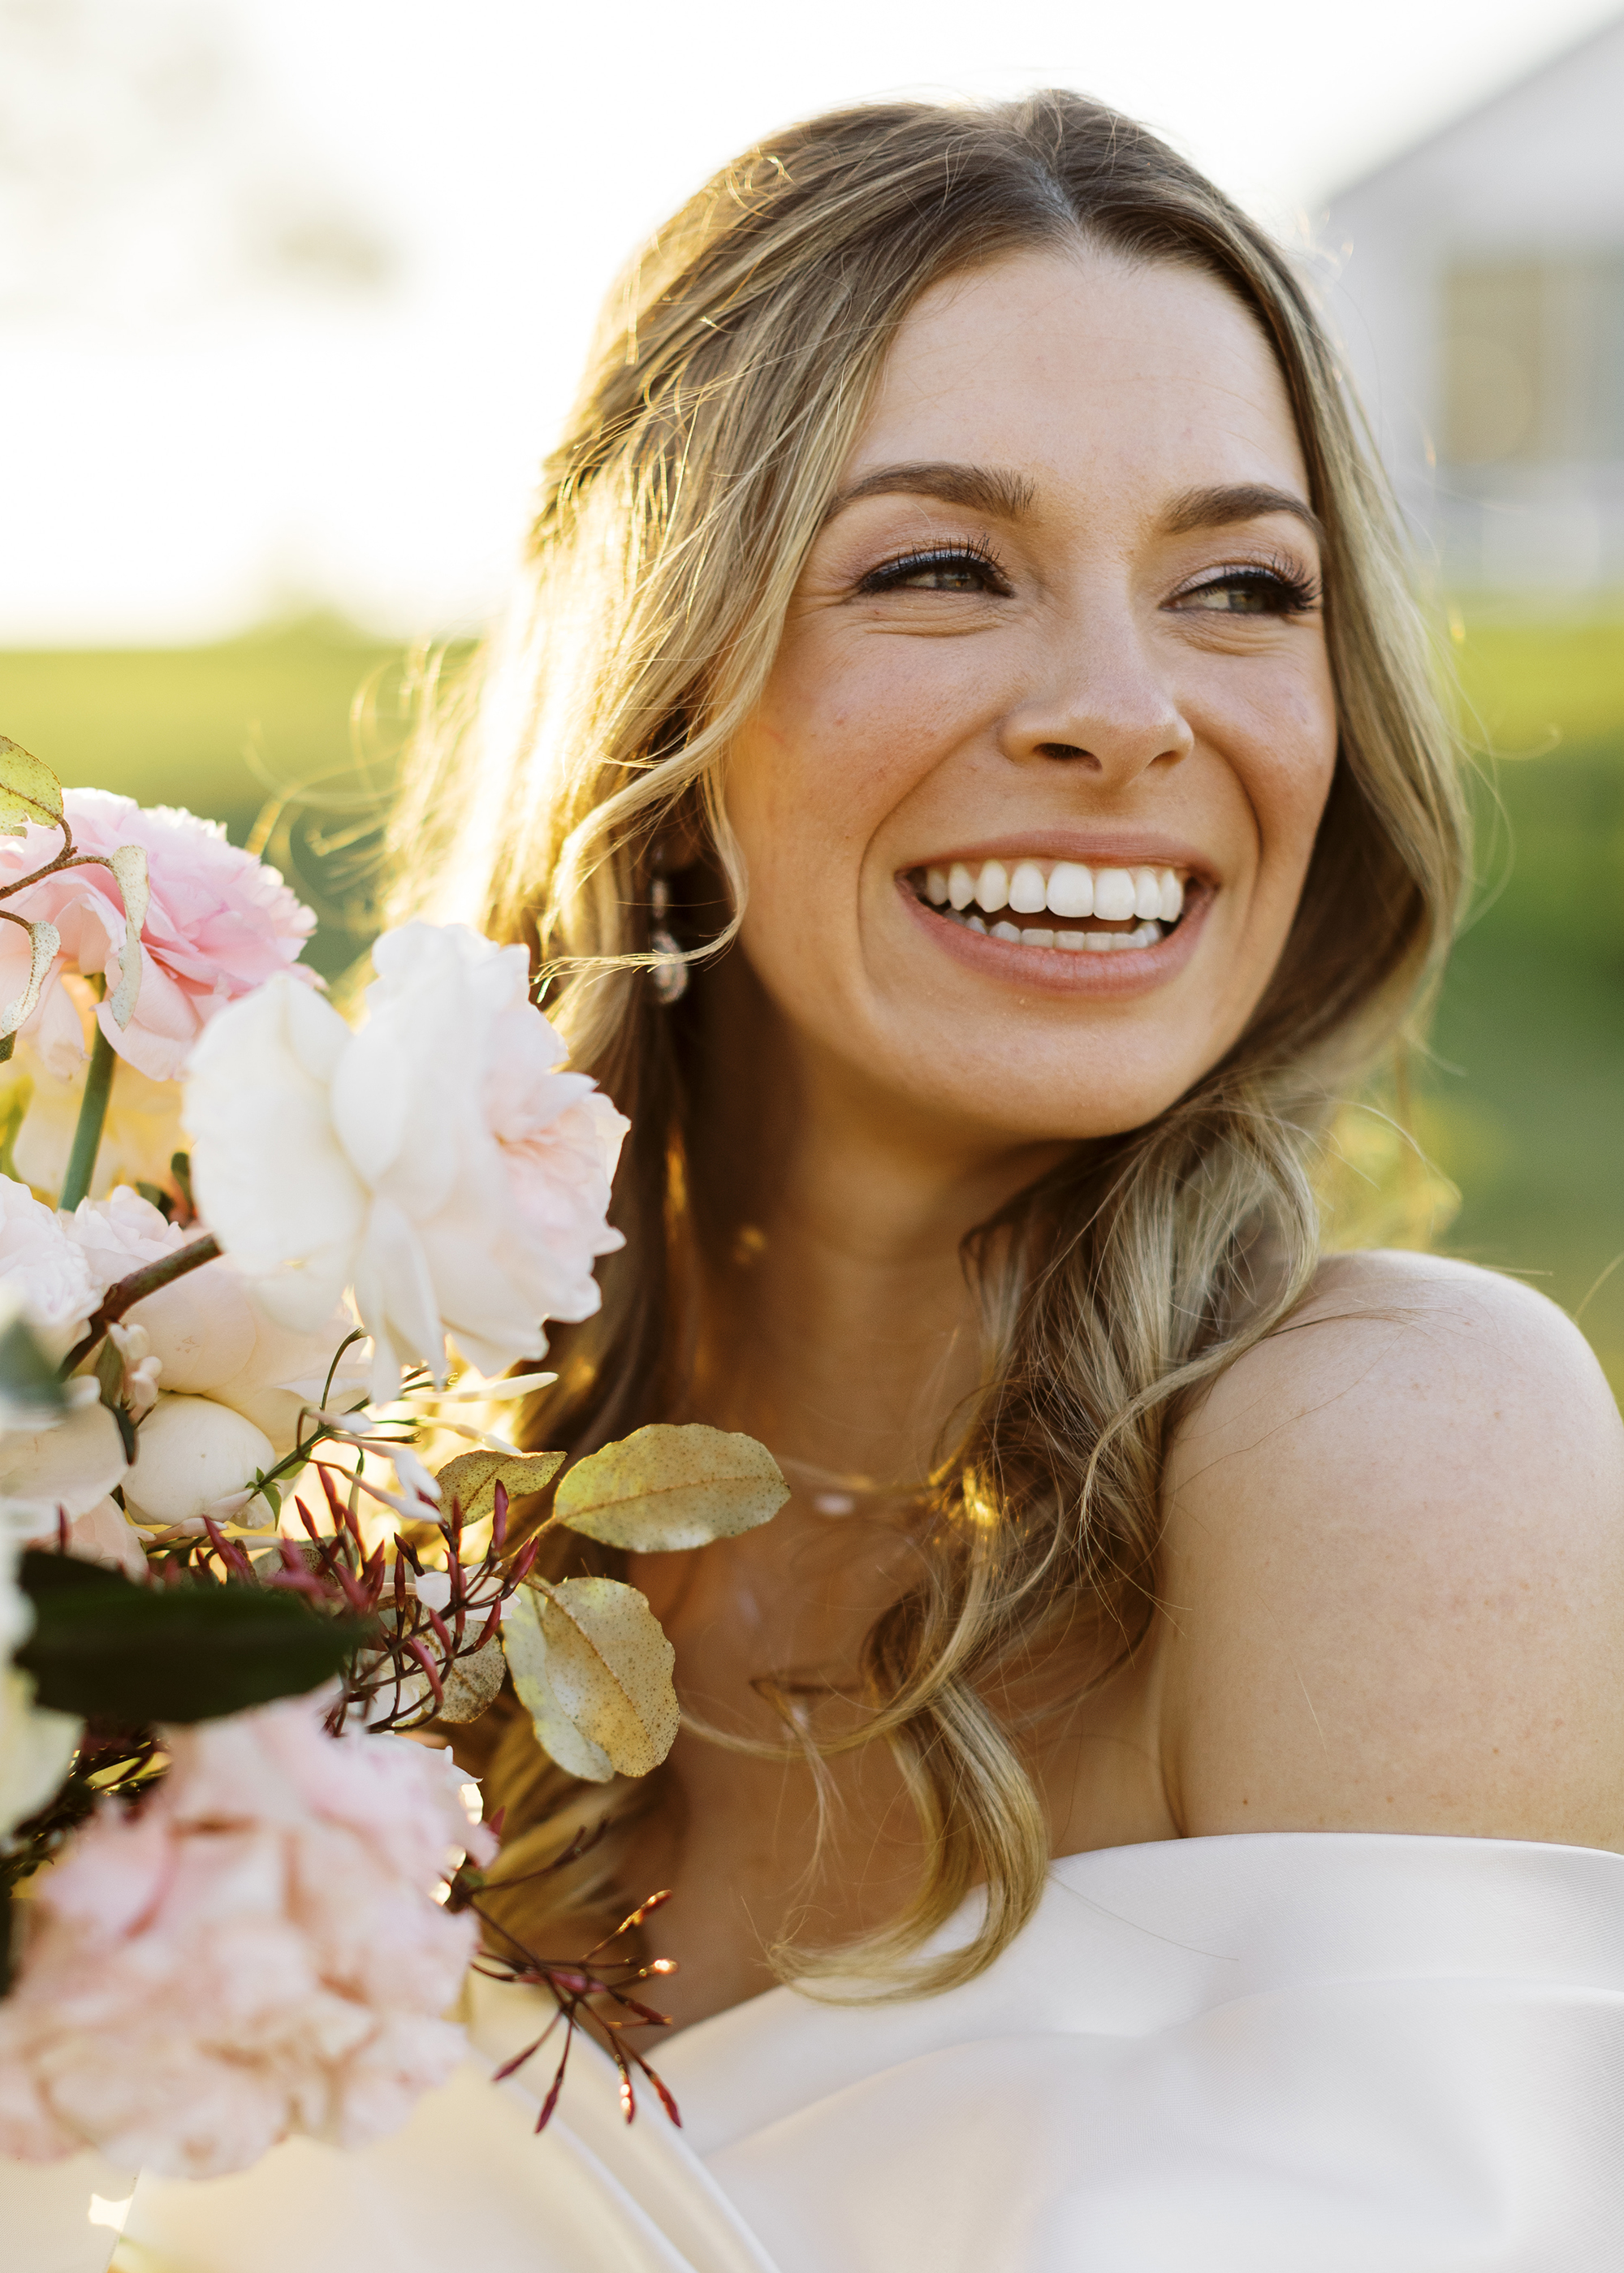 The bride is smiling while holding her bridal bouquet.